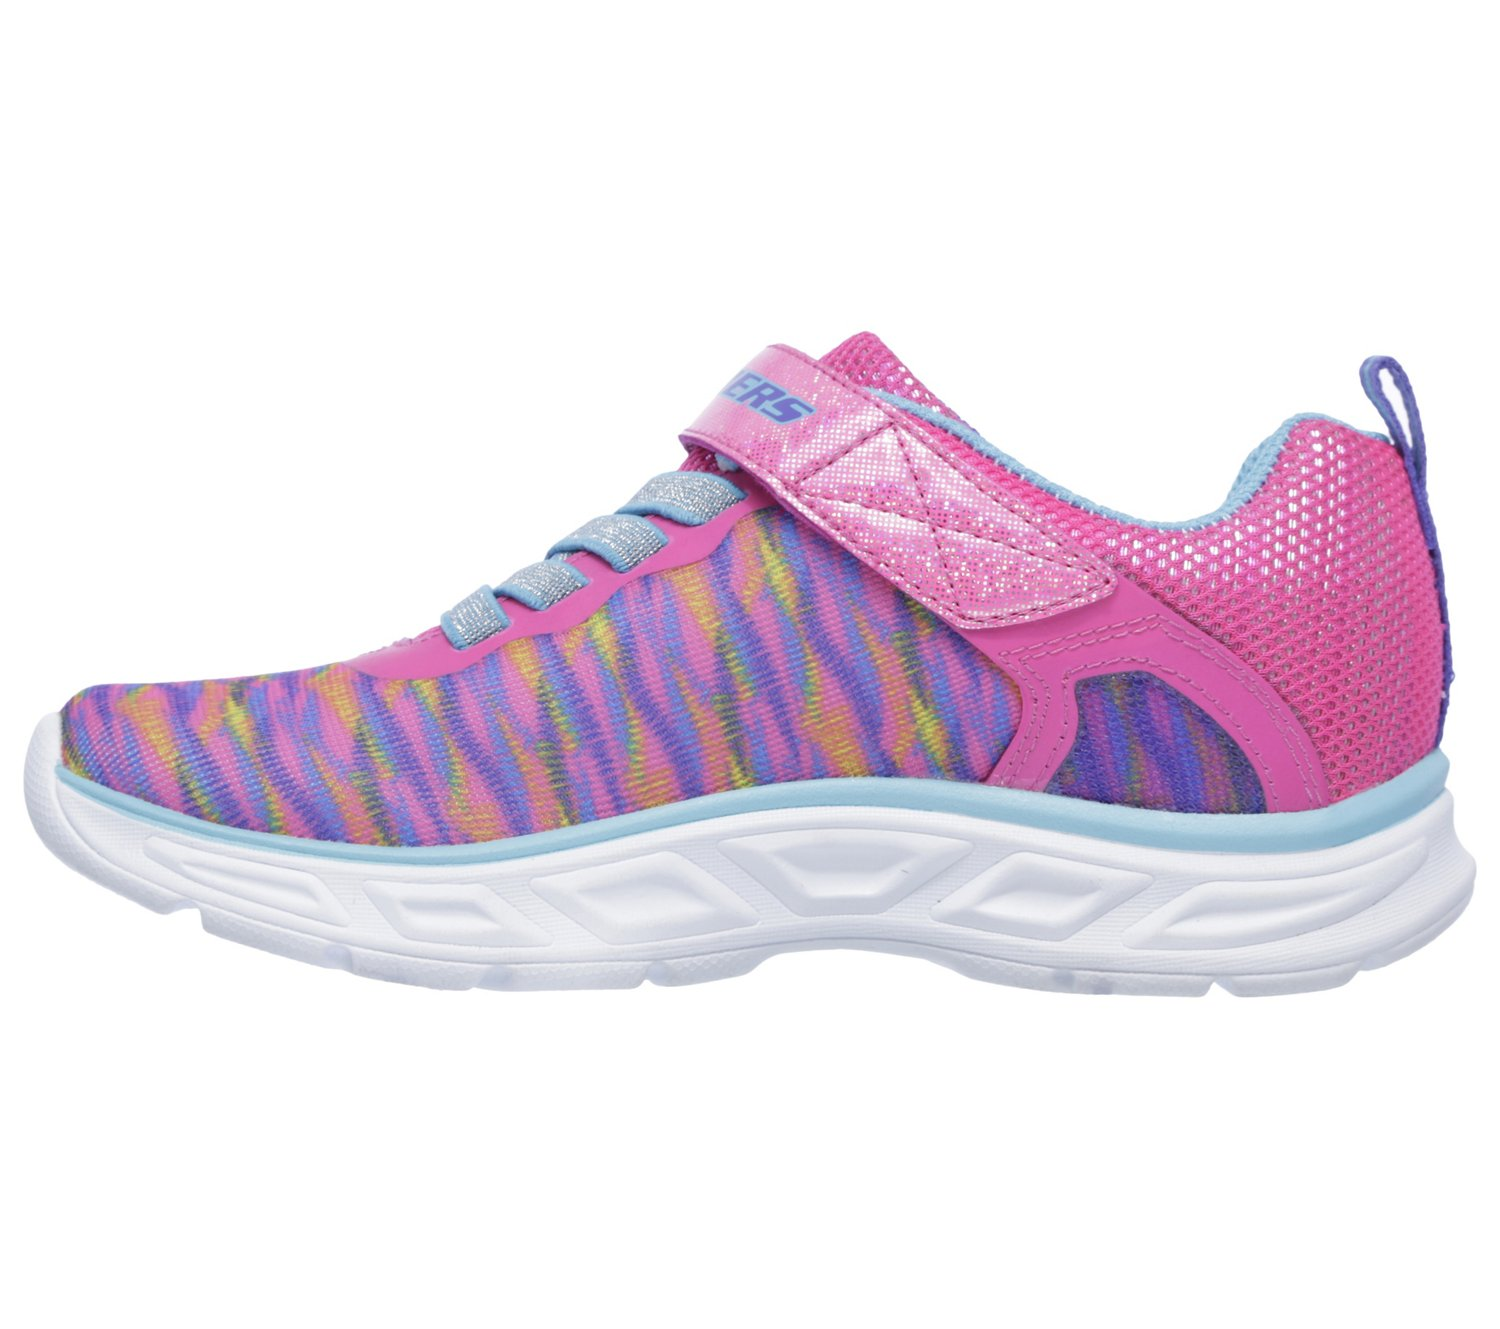 SKECHERS Girls' S Lights Litebeams Colorburst Shoes - view number 1